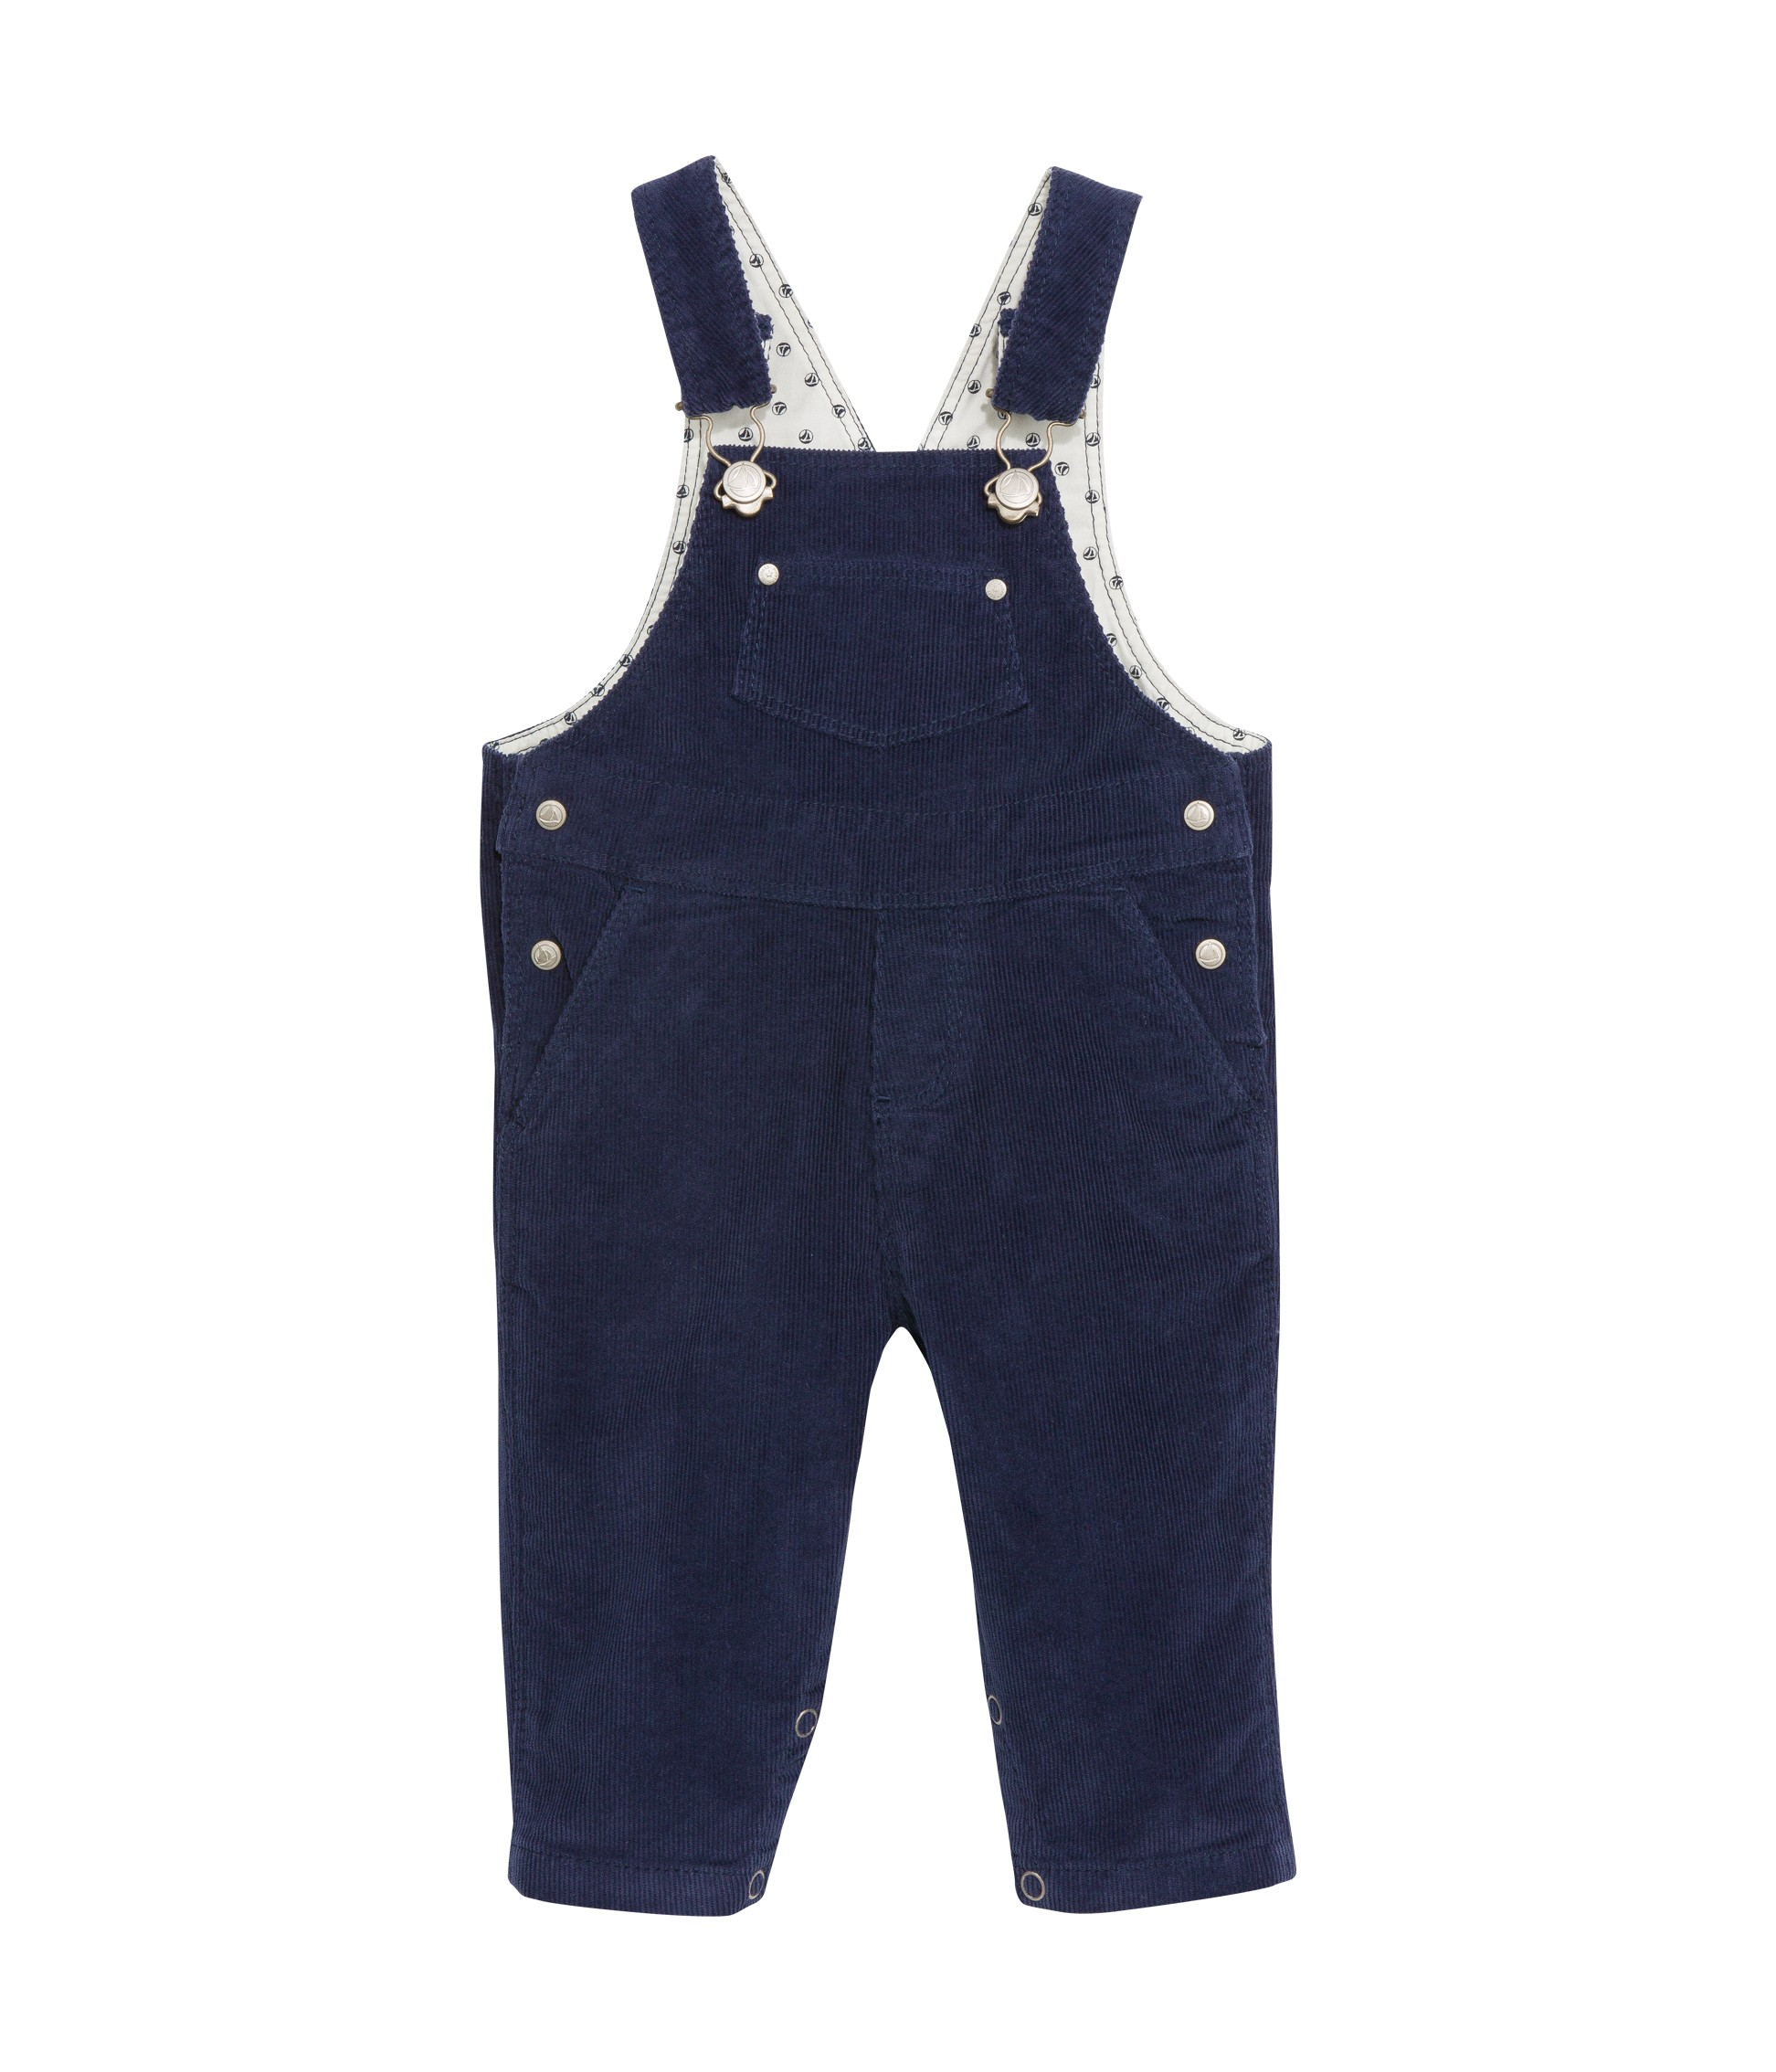 a1e8c8aef3ed PETIT BATEAU Dungarees in stretch corduroy dark blue for boy and girl